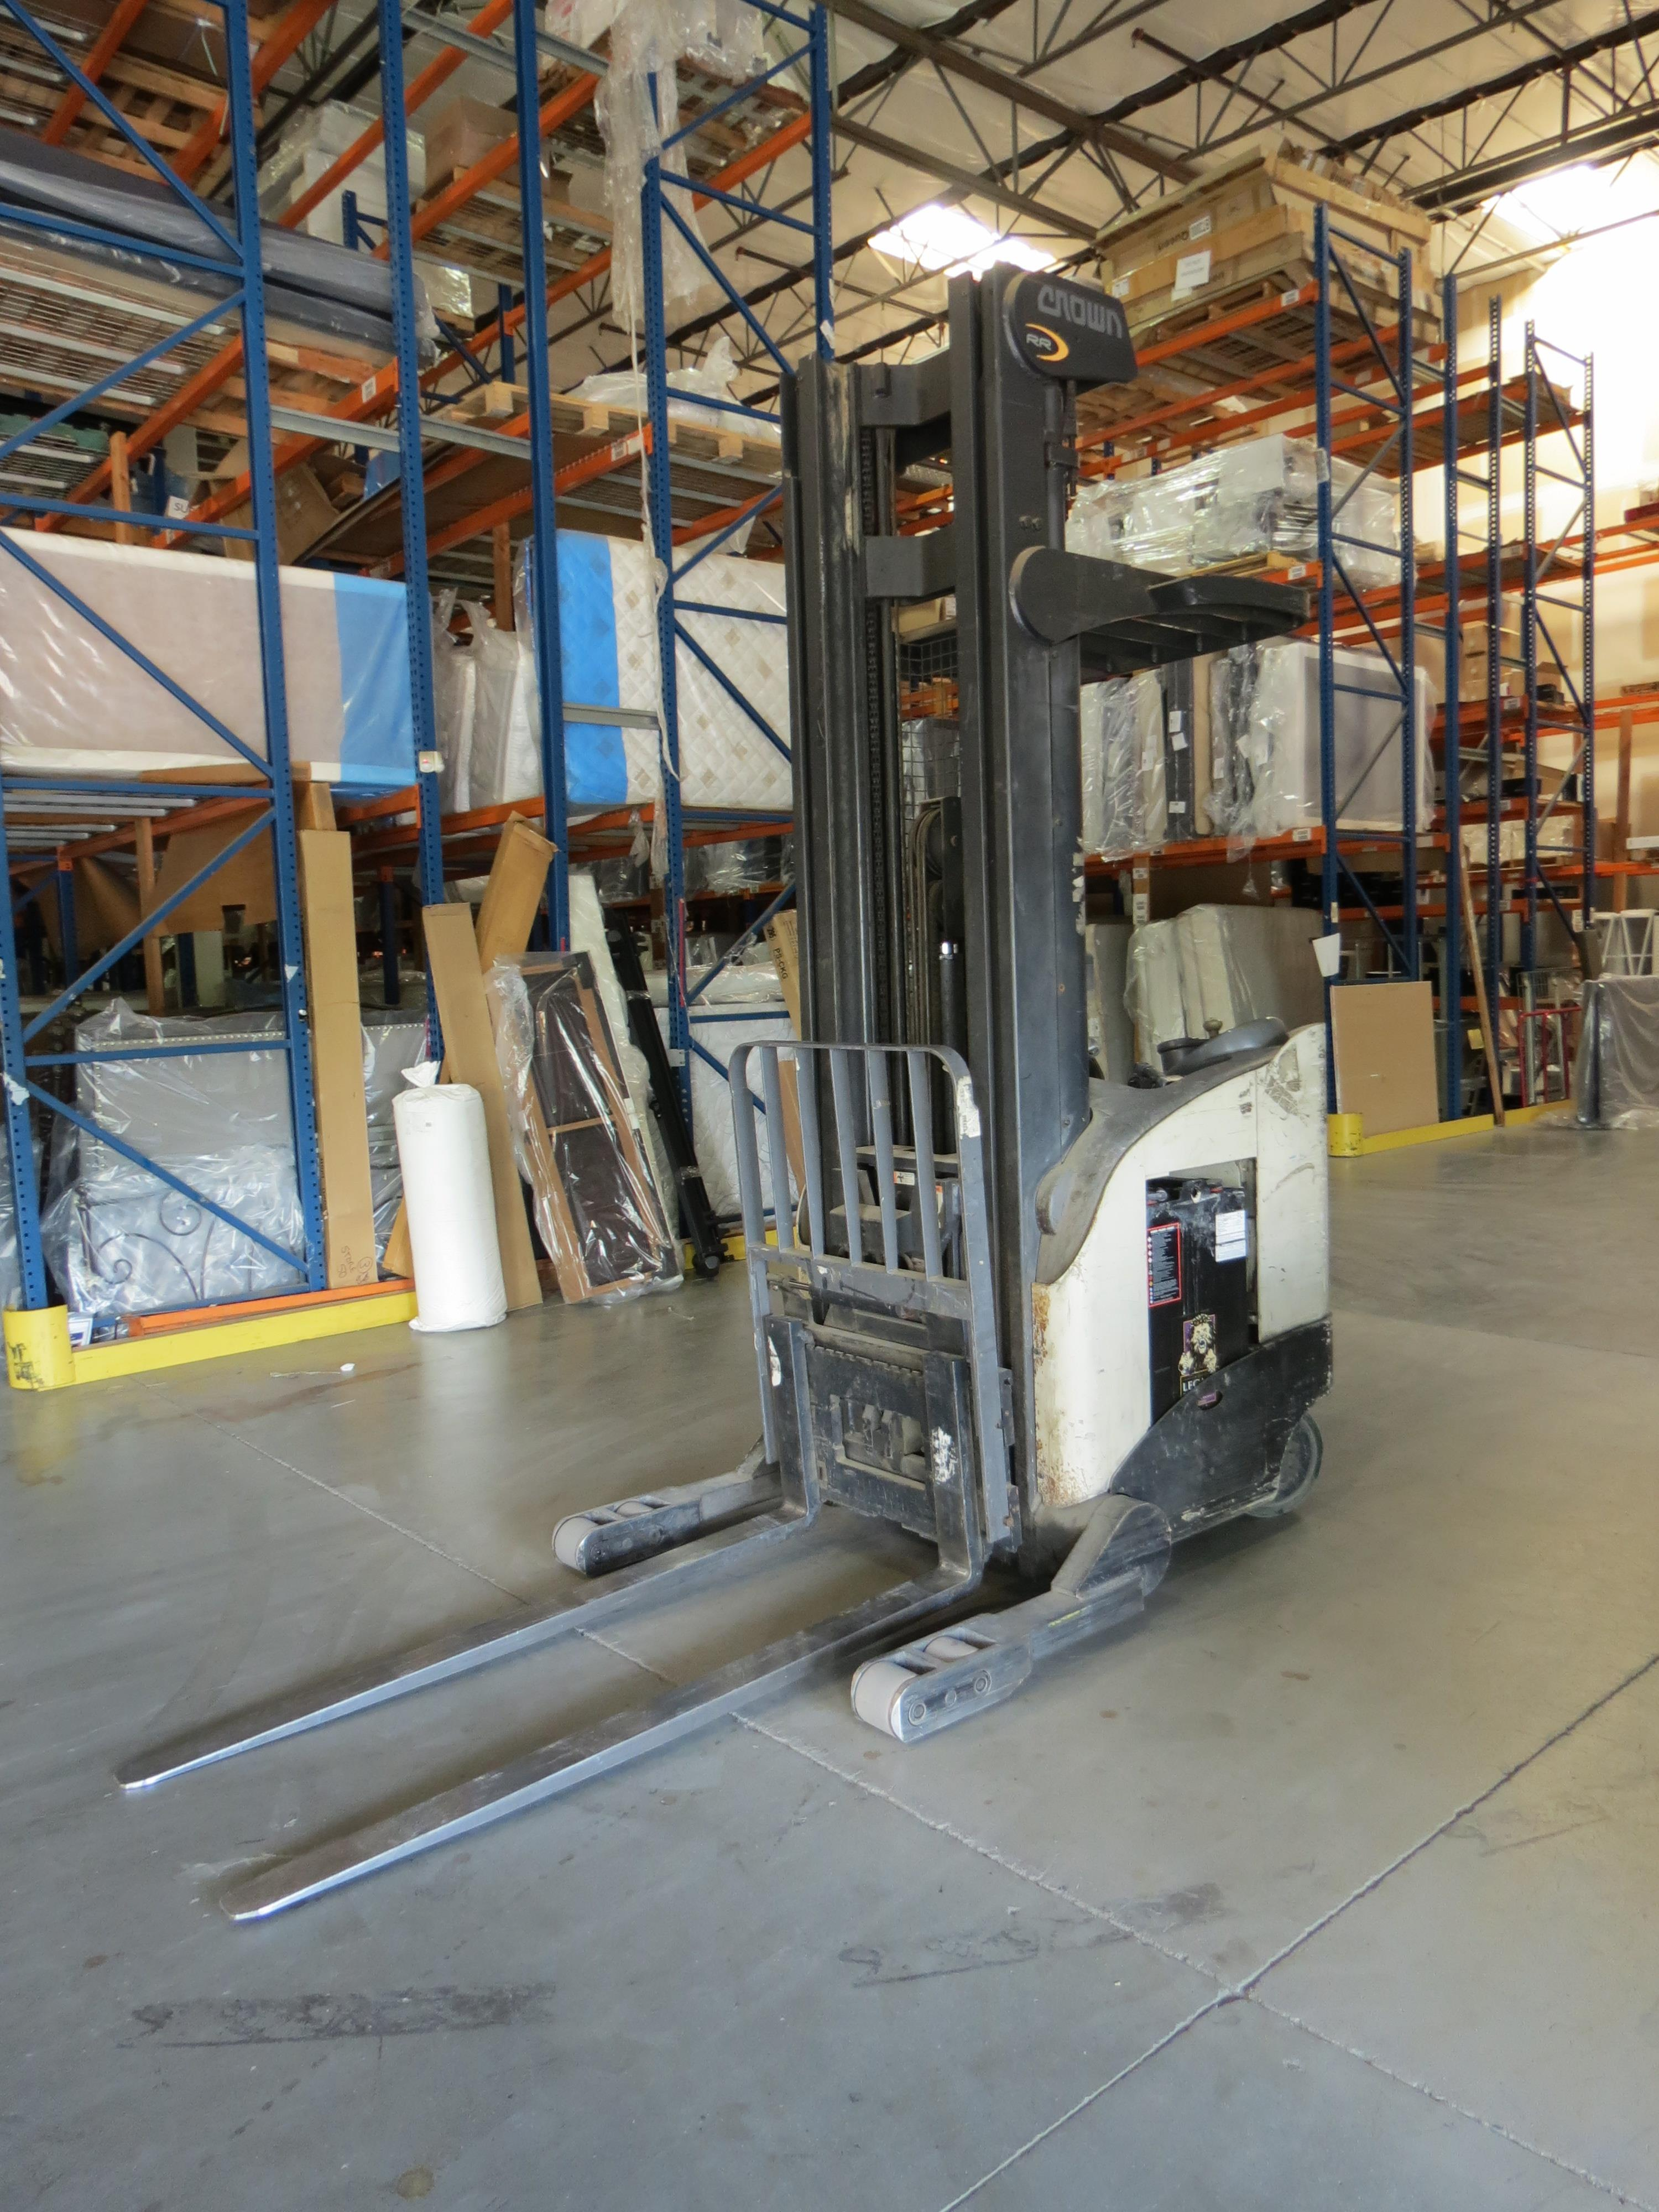 Crown RR 3-Stage Reach Electric Forklift 6860 Capacity SN:1A292256 With Legacy Power System